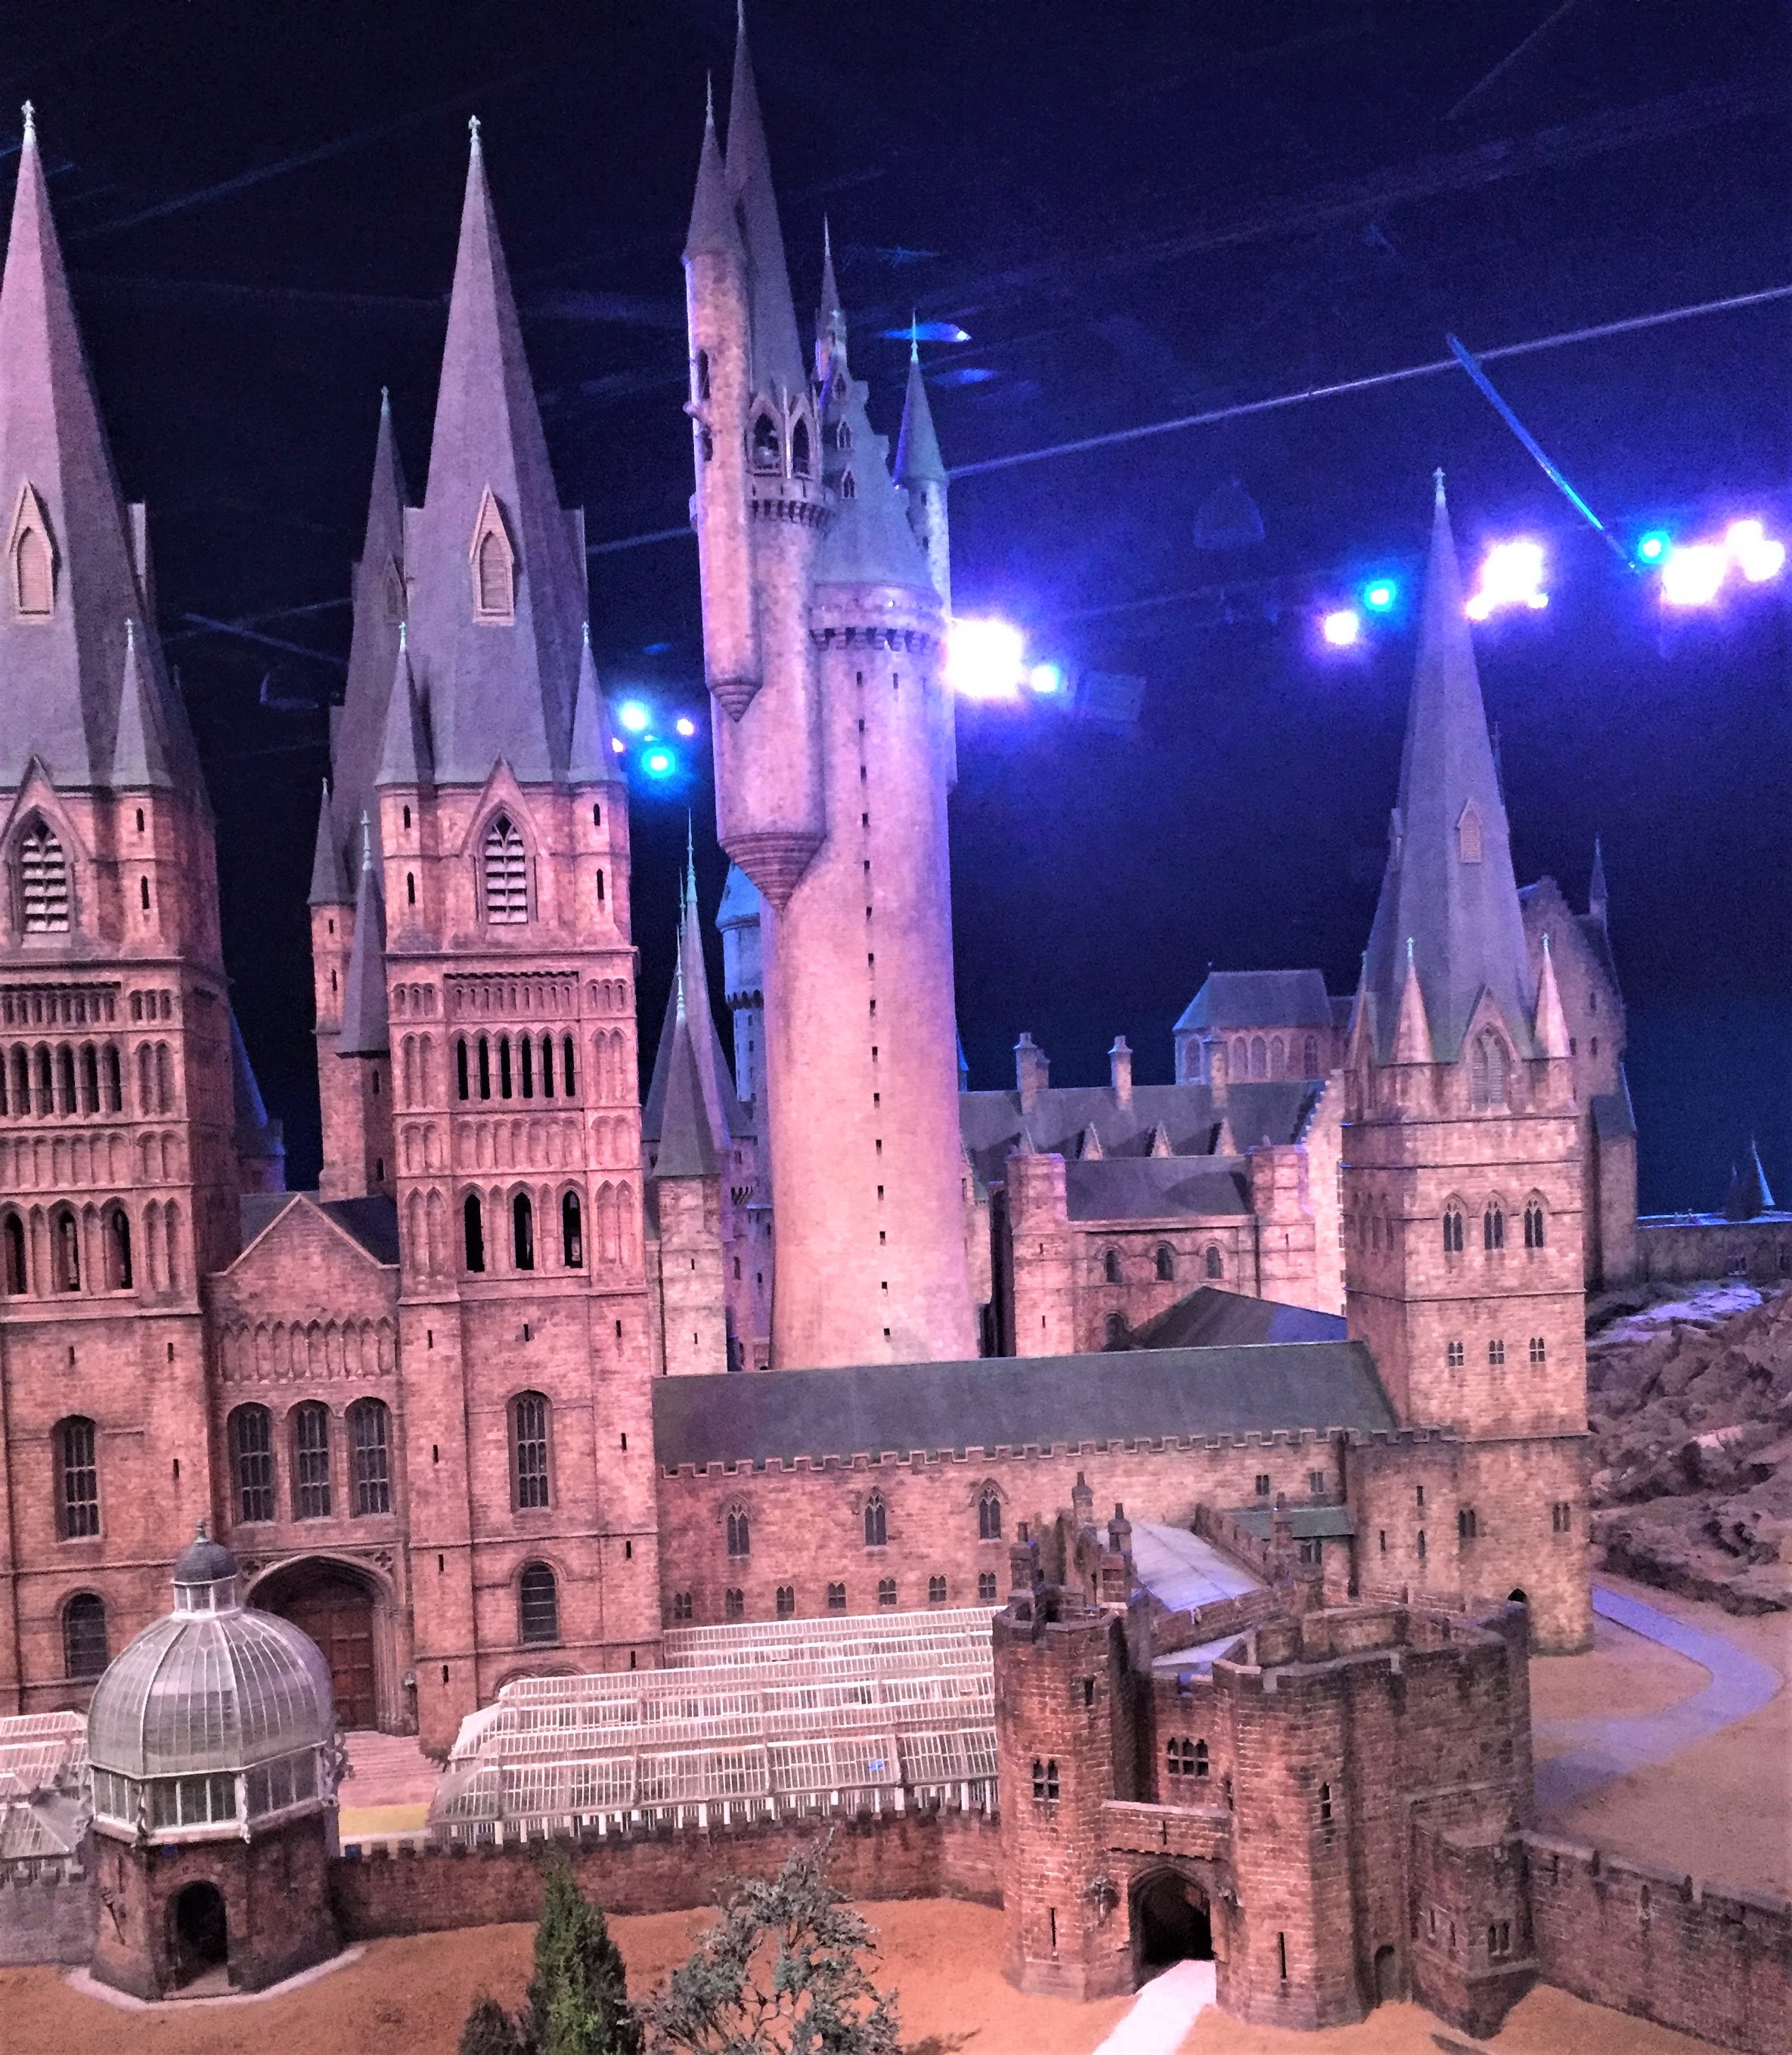 Hogwarts Castle model at the Harry Potter Studio Tour in London.